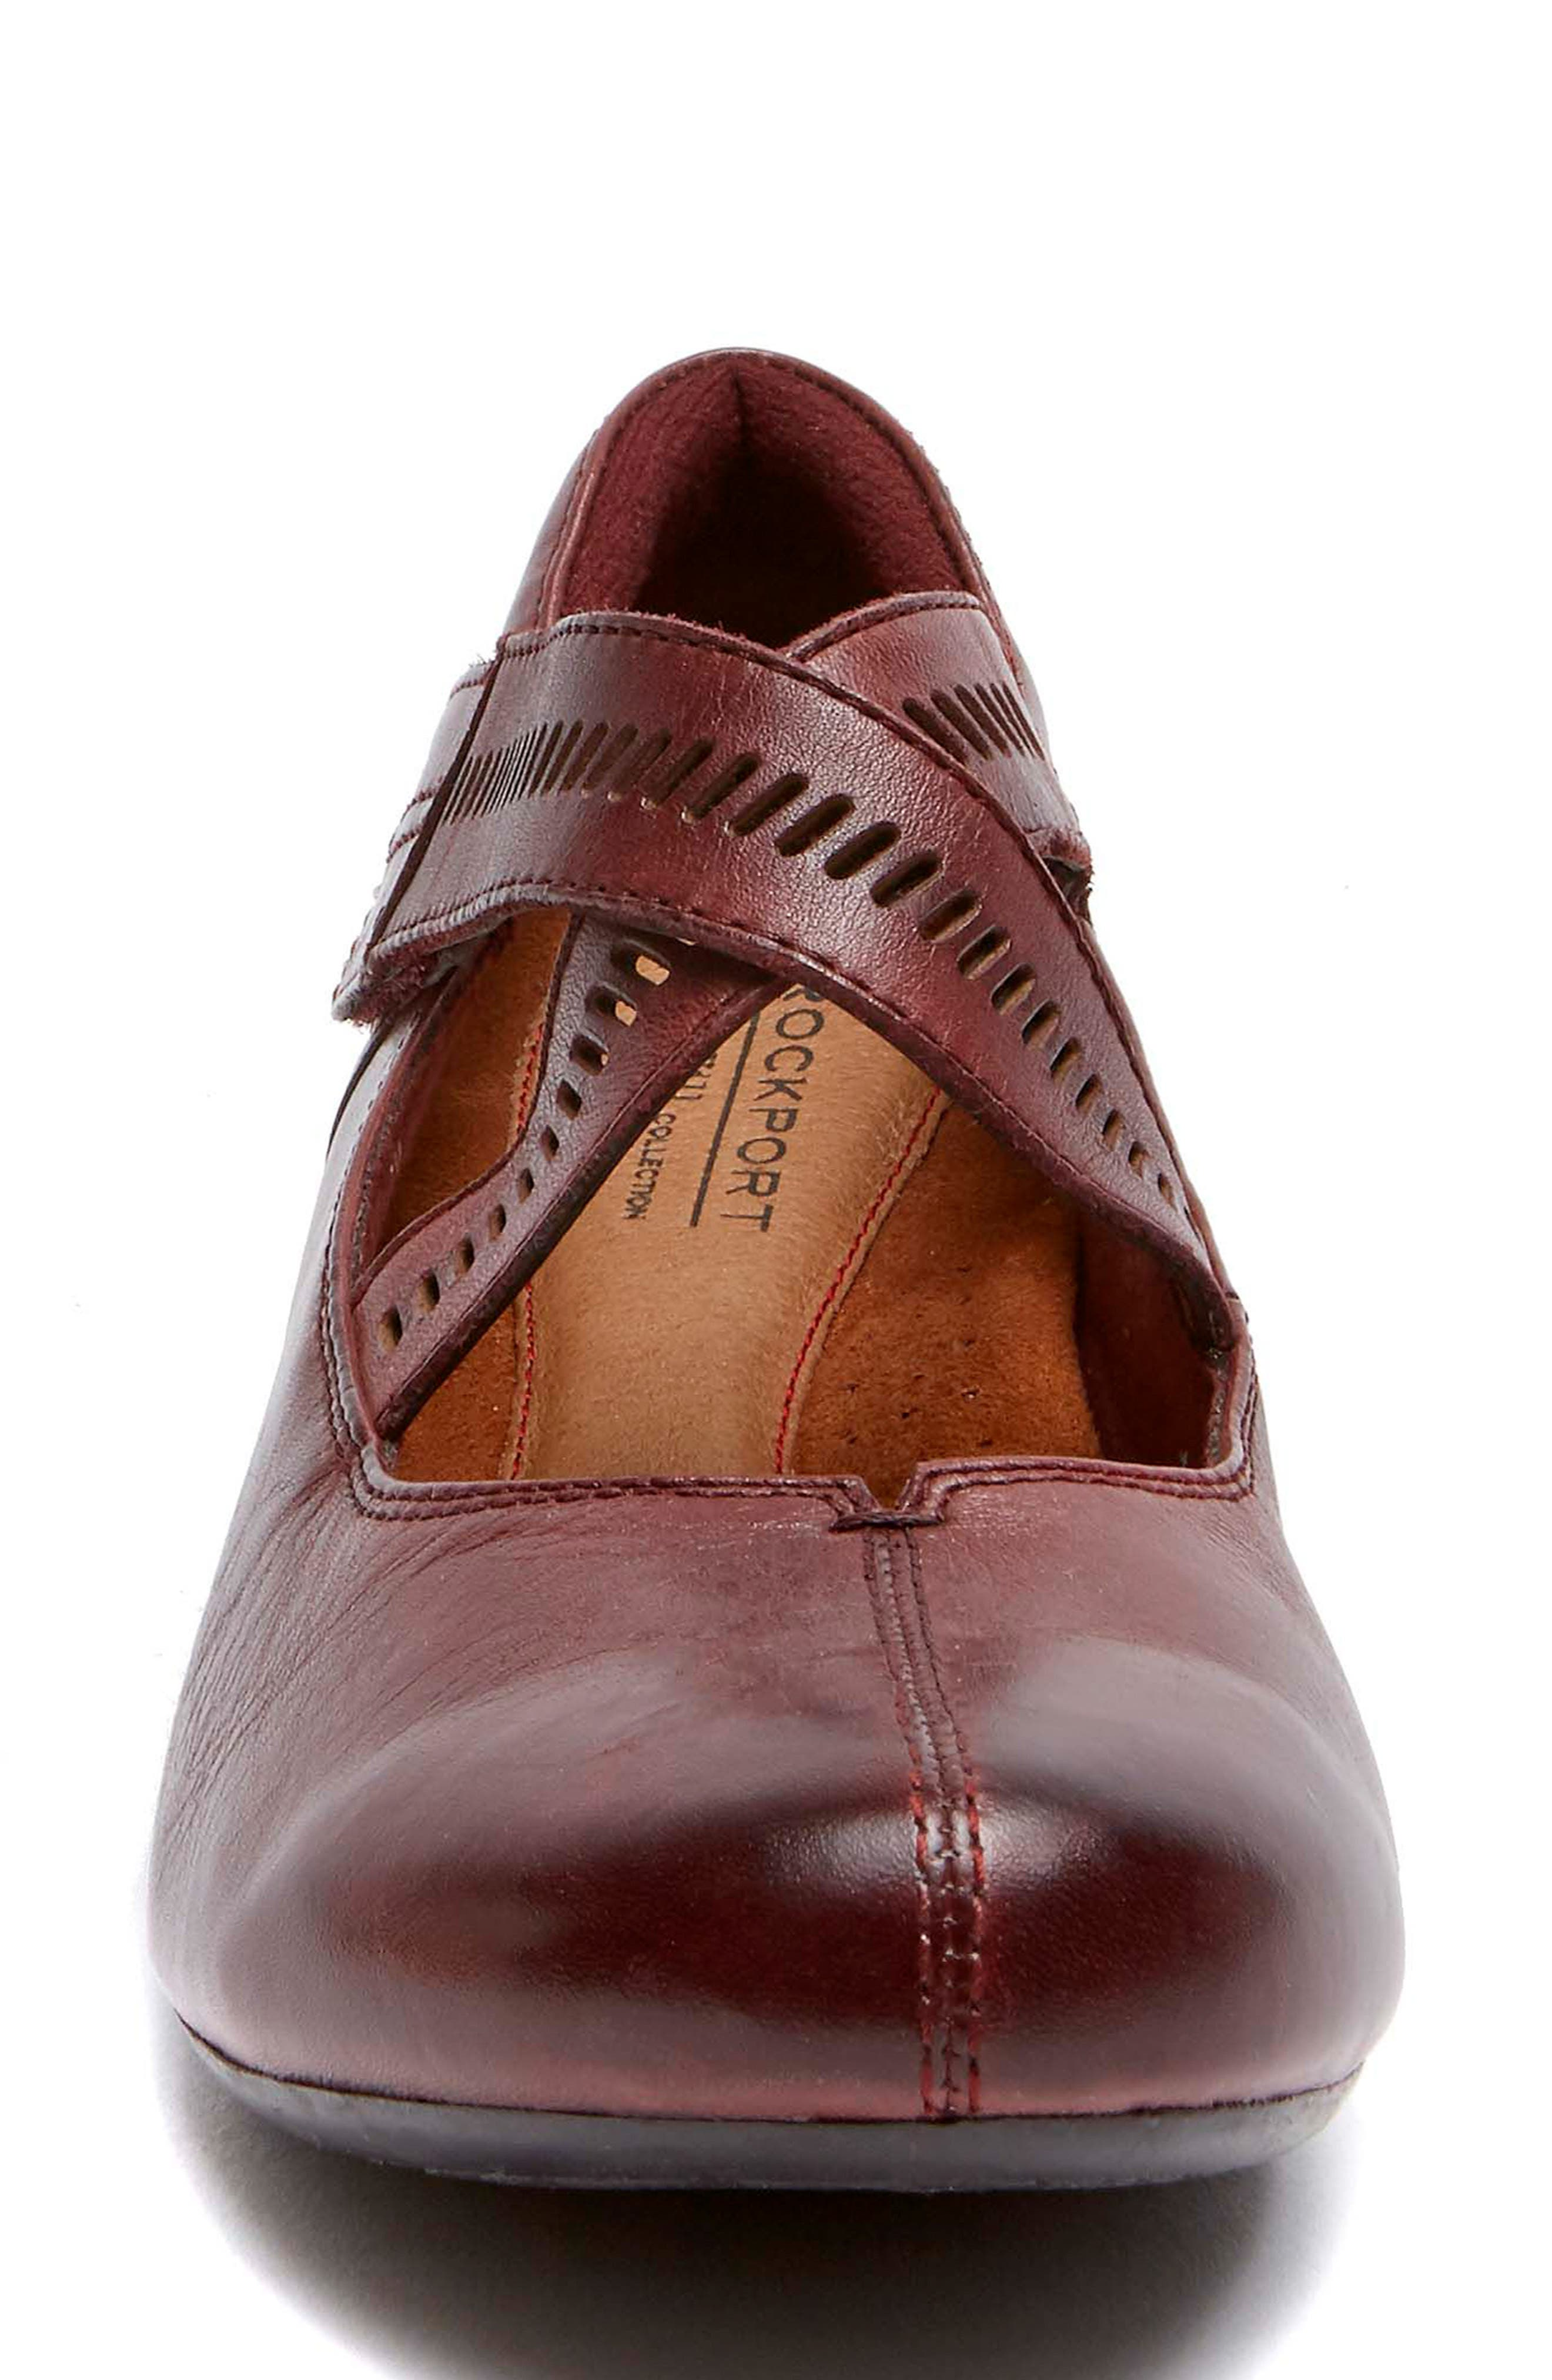 'Janet' Mary Jane Wedge,                             Alternate thumbnail 4, color,                             MERLOT LEATHER